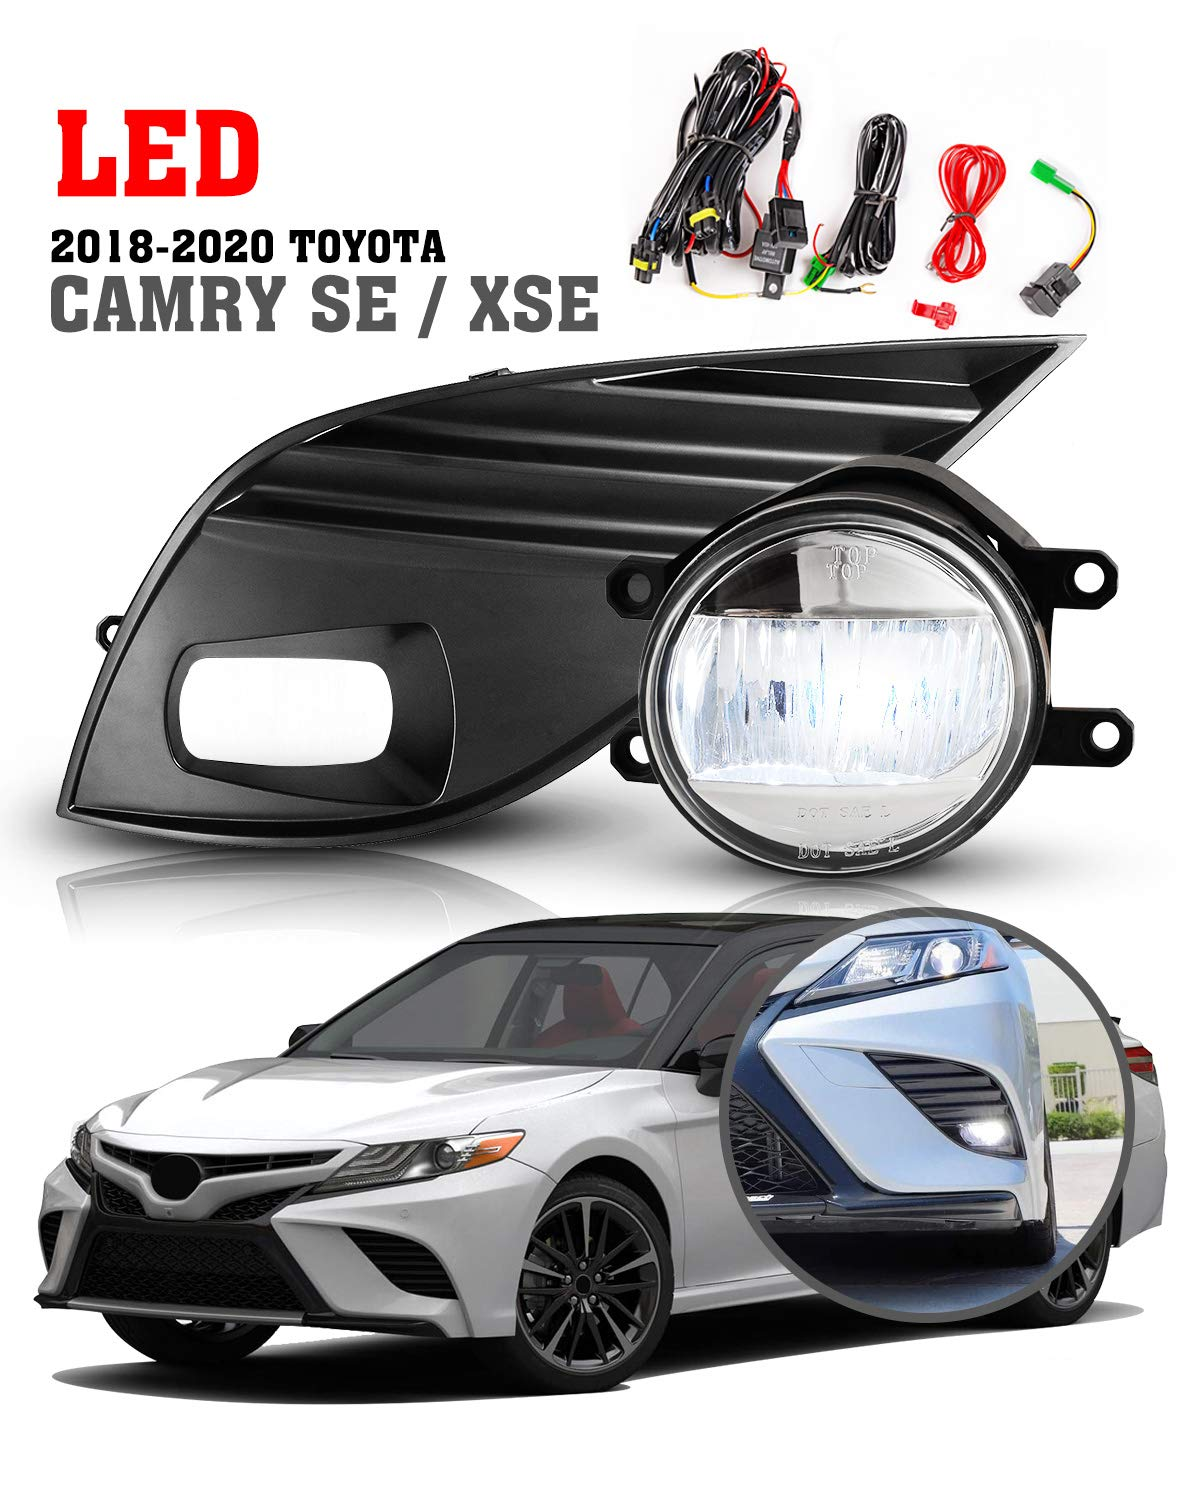 LED Fog Lights For 2018 2019 2020 Camry SE XSE(not for hybrid model) Driving Lamp Assembly included Wiring Kit & Switch 1 Pair- (Clear Glass Lens)